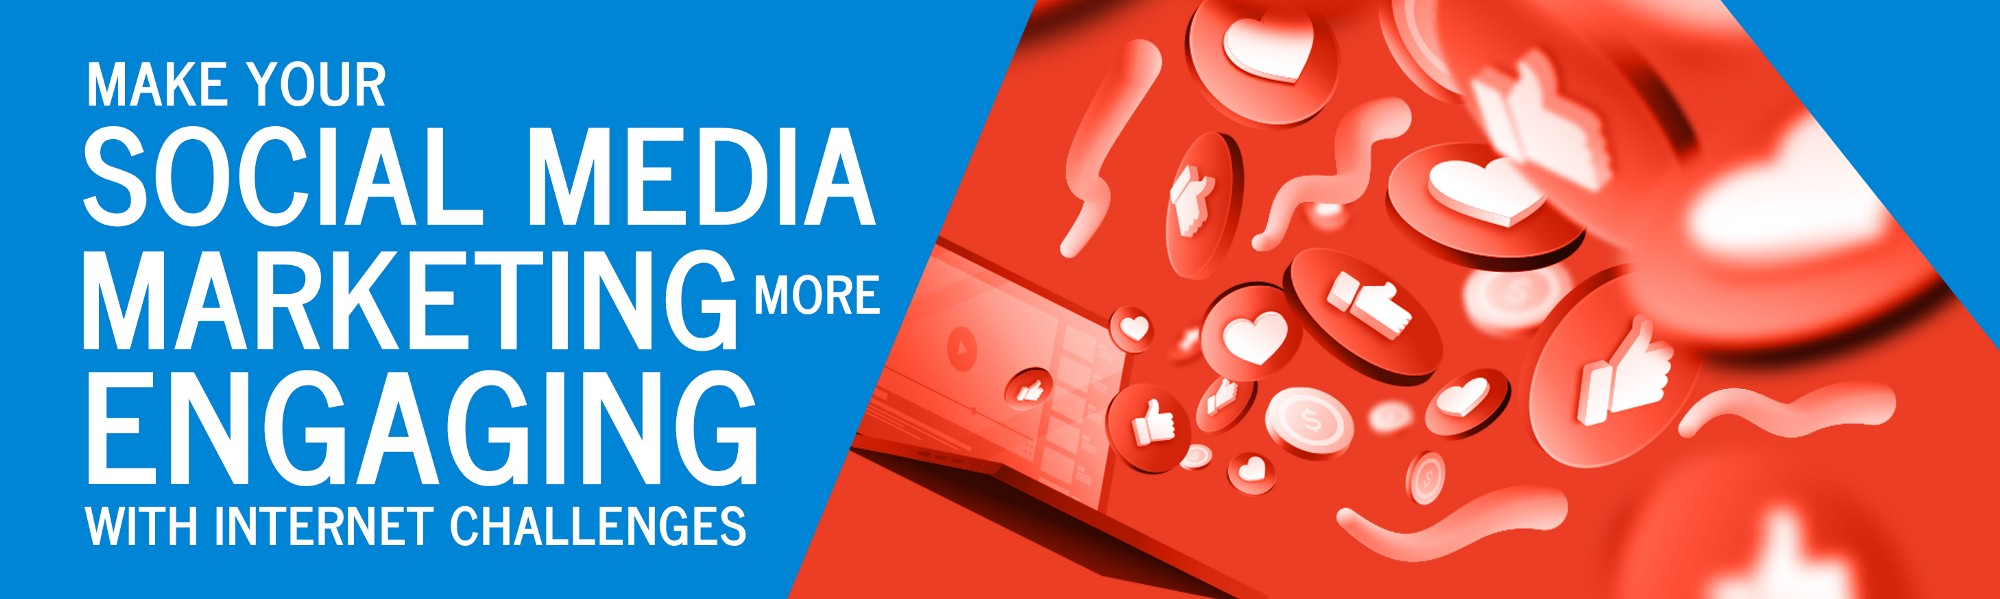 Make Your Social Media Marketing More Engaging with Internet Challenges